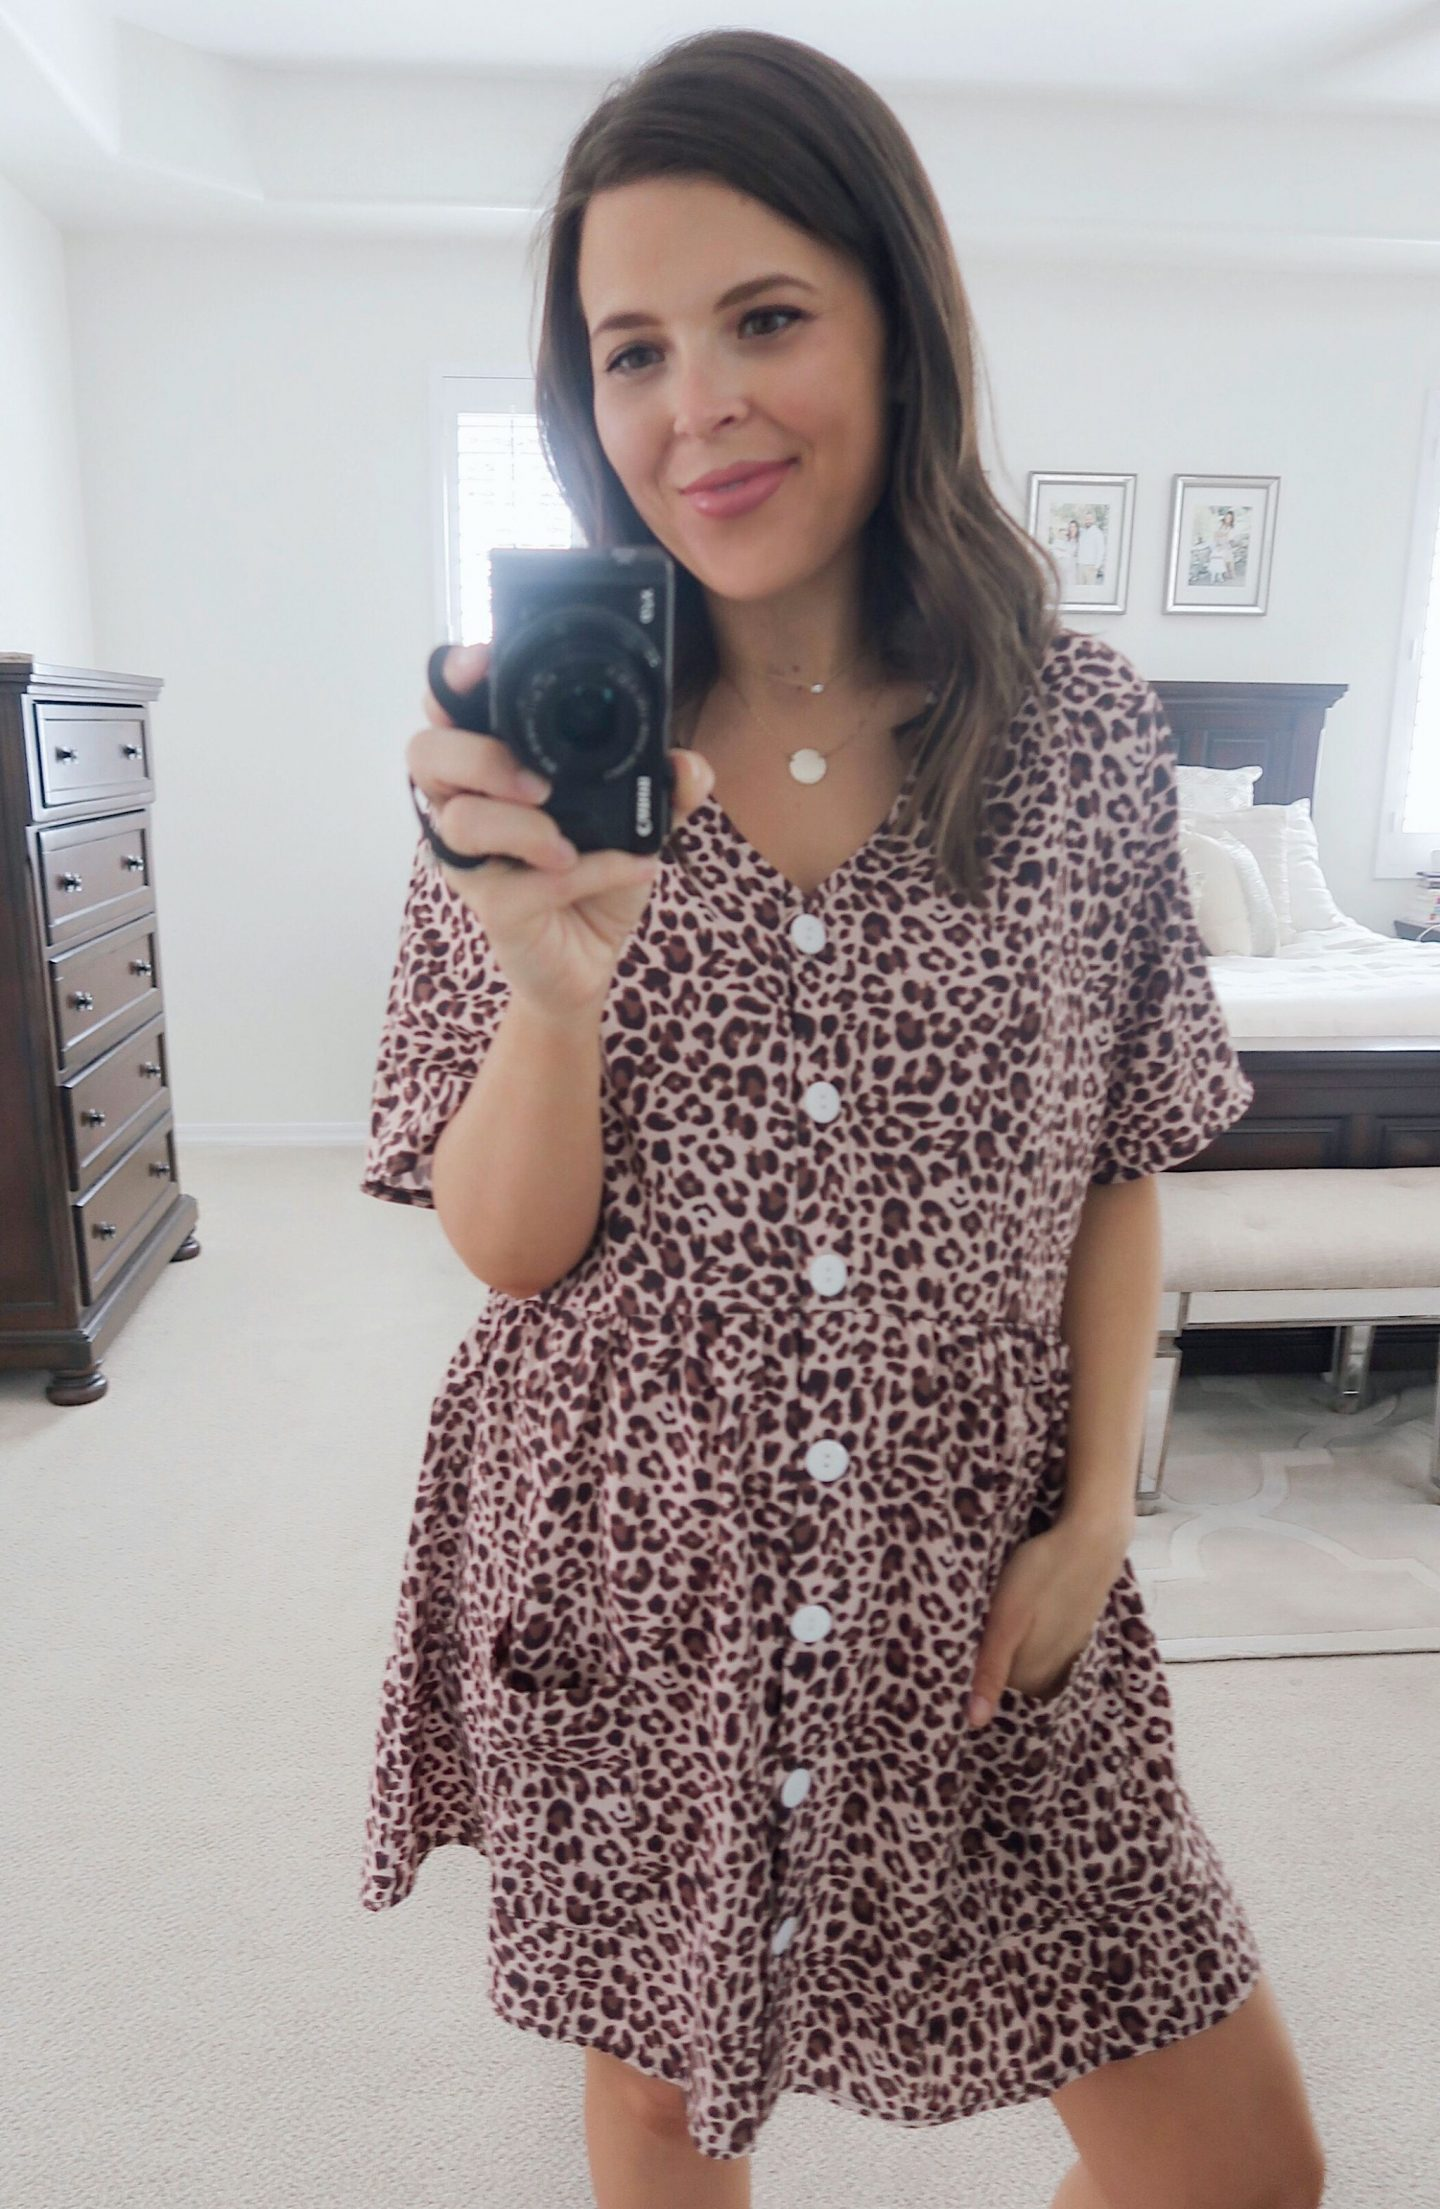 amazon try-on brie_bemis_rearick_amazon_leopard_button_down_loose_swing_dress_with_pockets_2